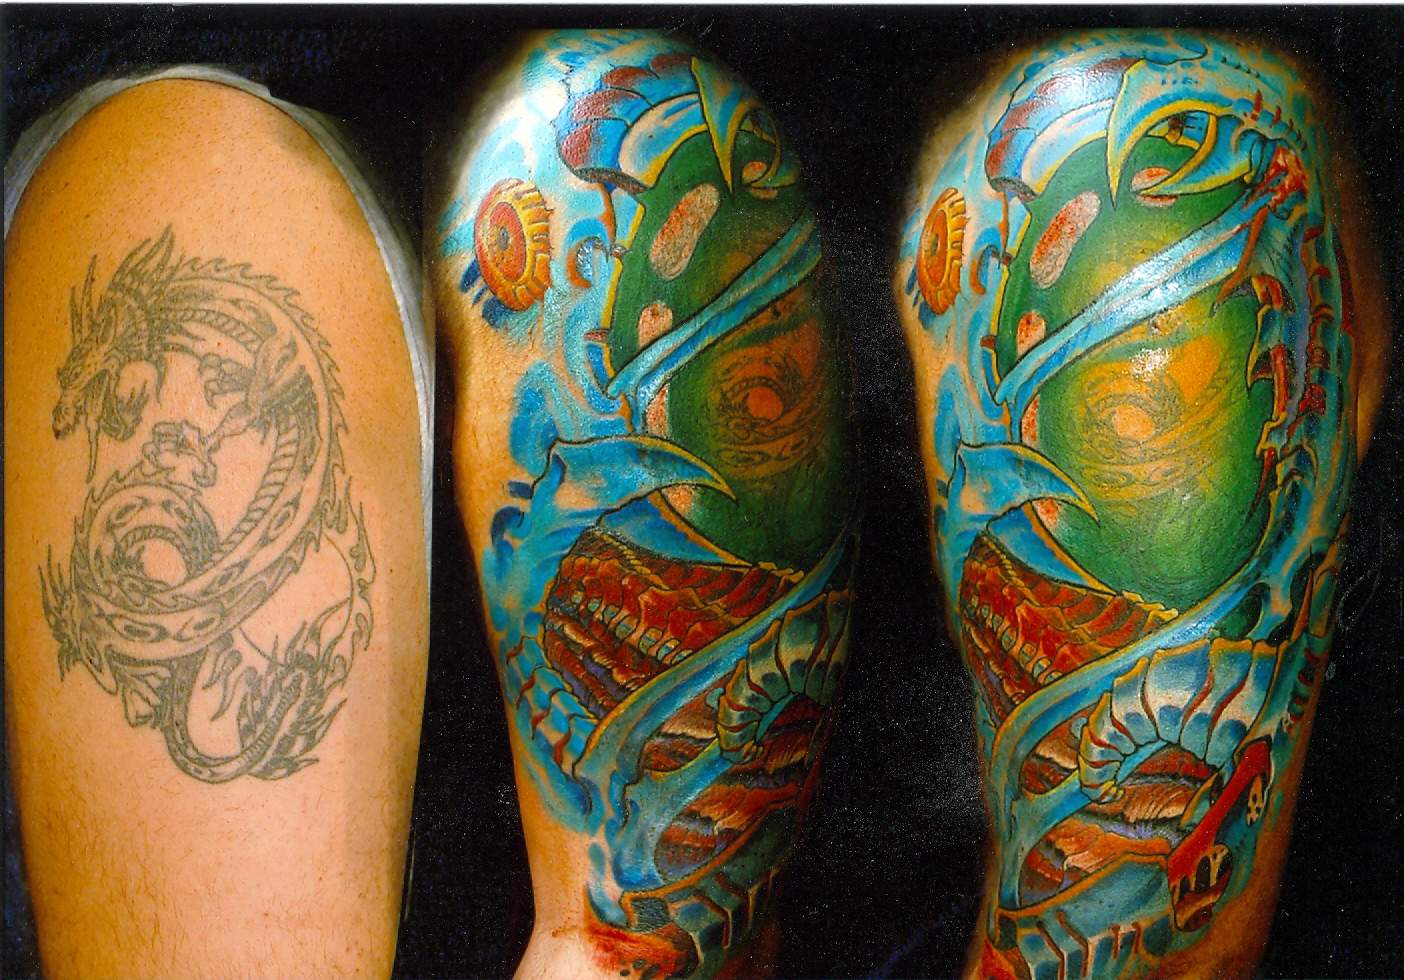 And the cover-up of the dragon